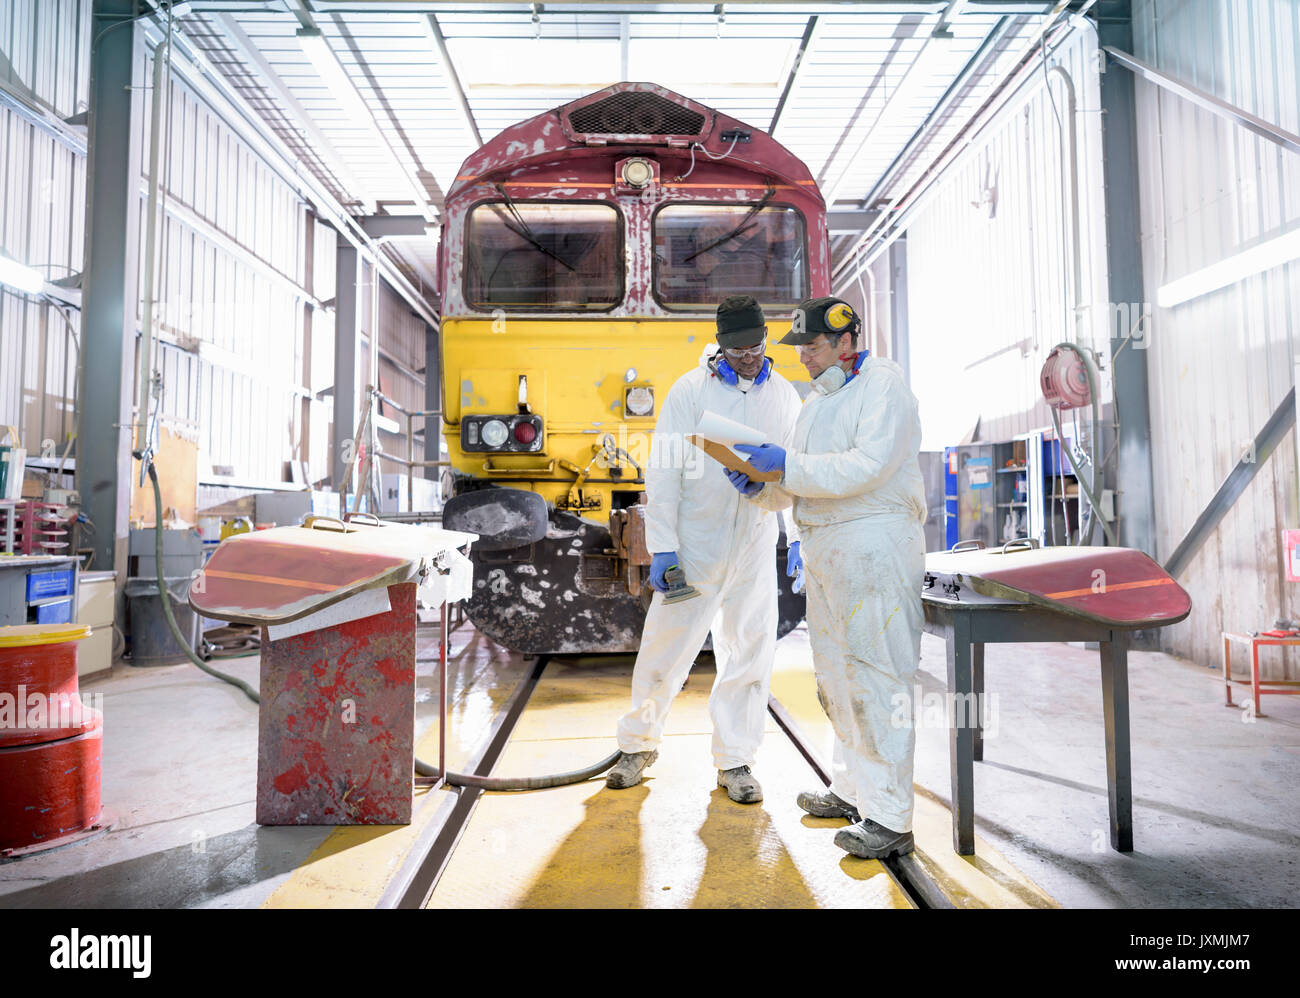 Painters in paintshop with refurbished locomotive in train works - Stock Image